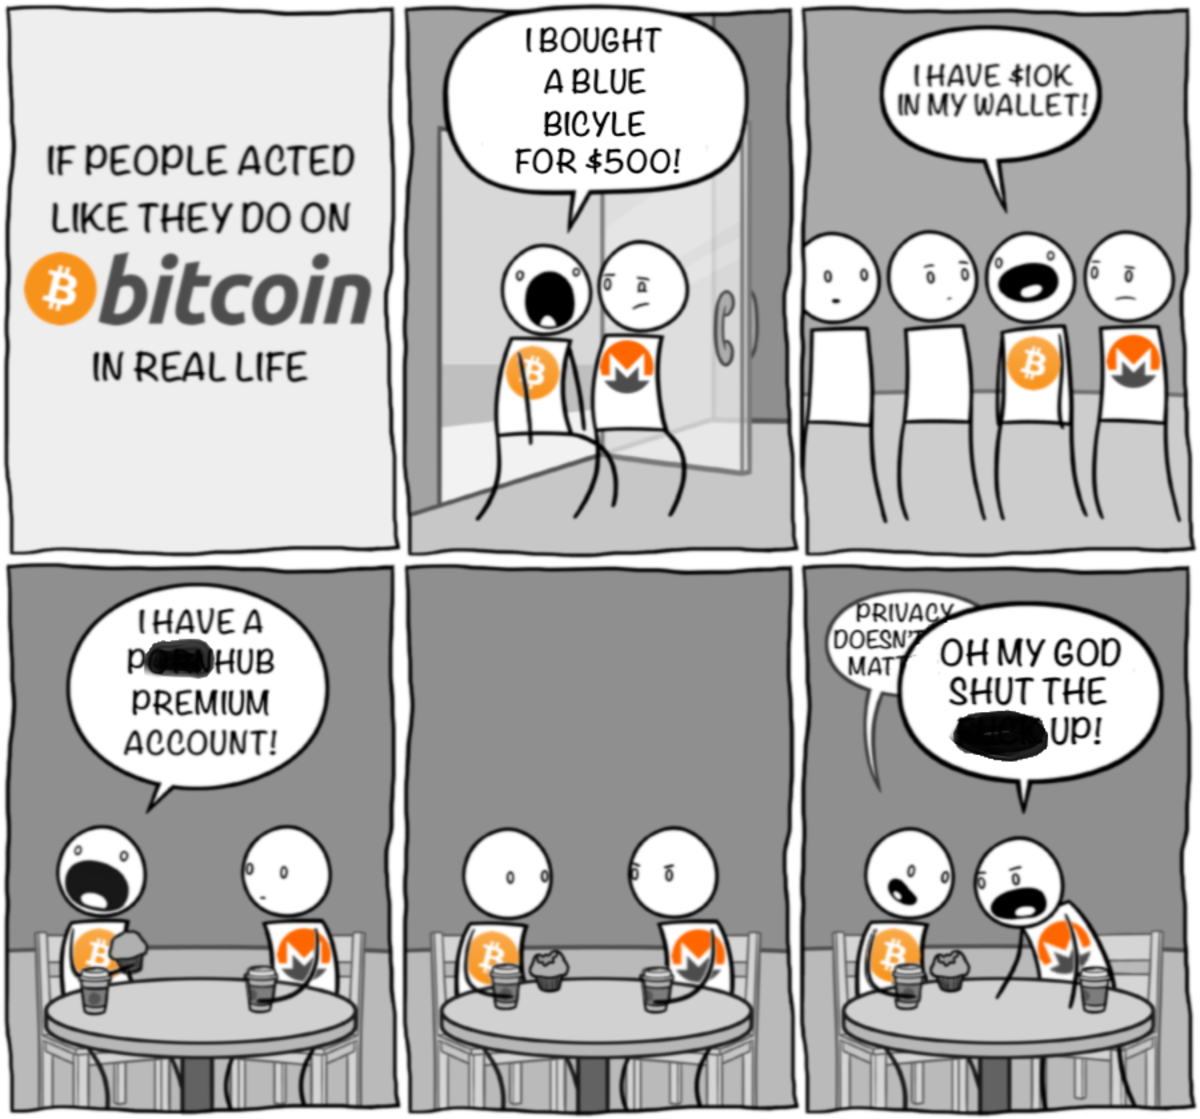 This cartoon makes light of Bitcoin's lack of privacy.